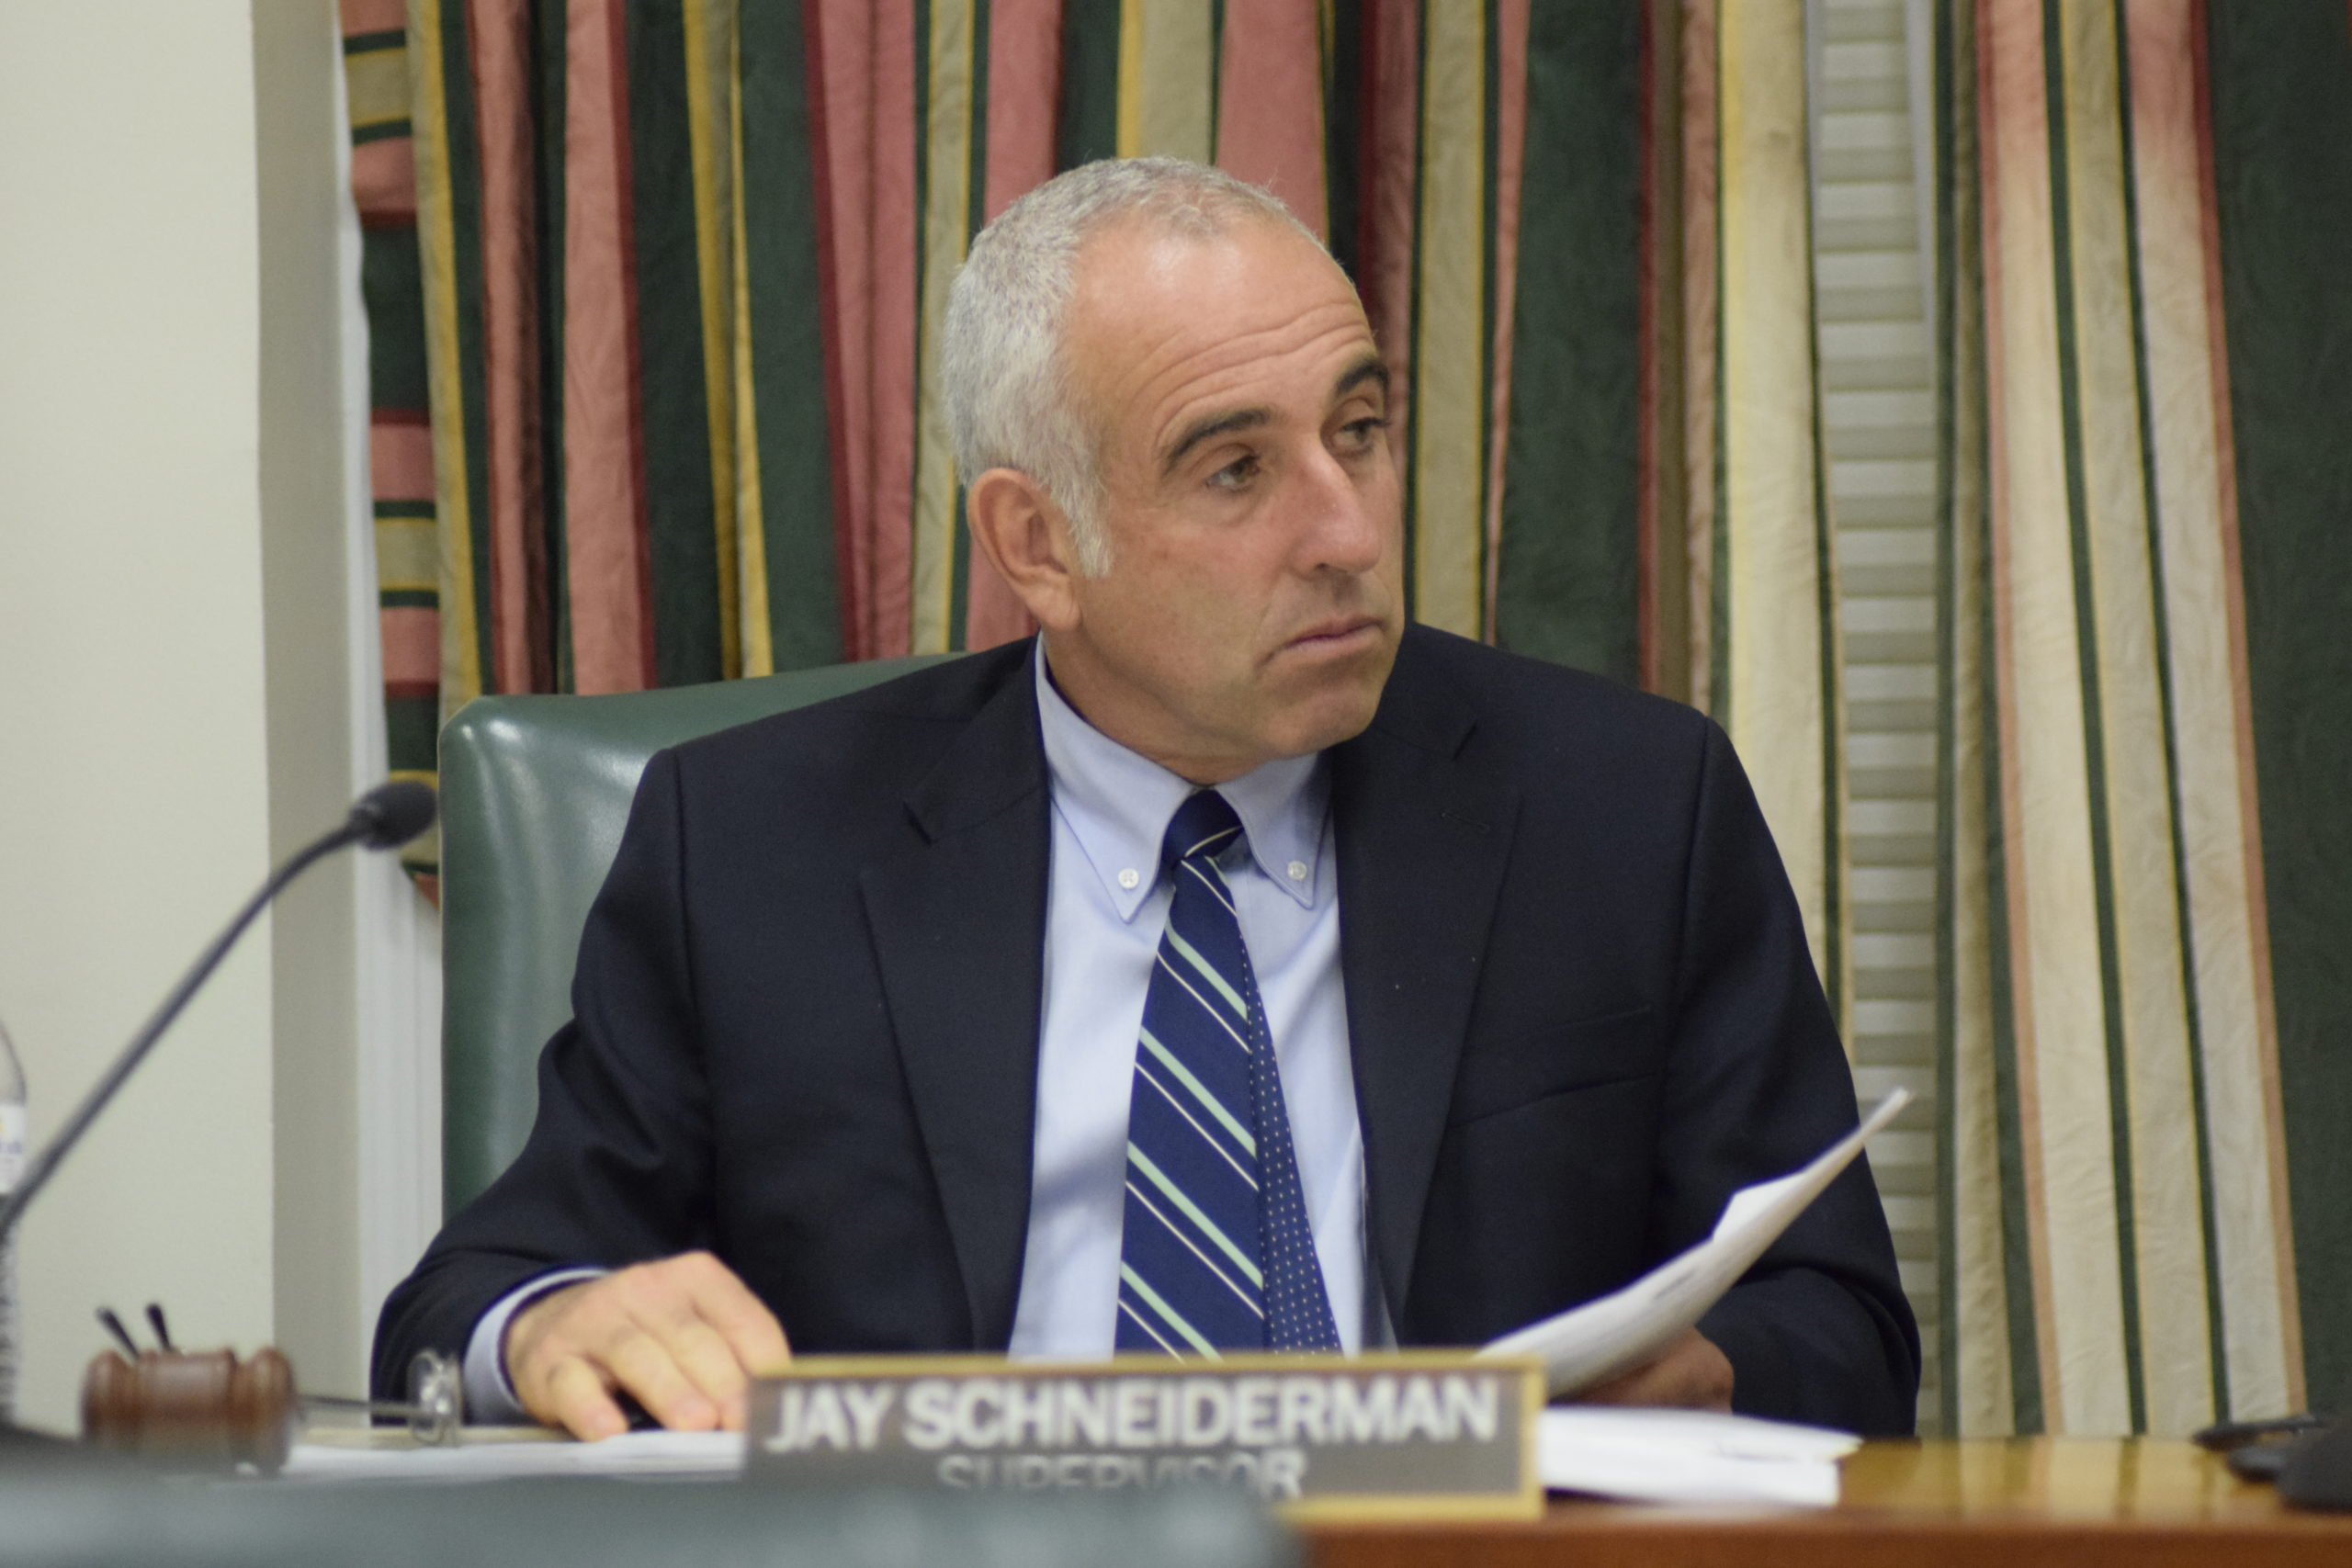 Southampton Town Supervisor Jay Schneiderman visualizes a united appeal across the East End to help the needy.